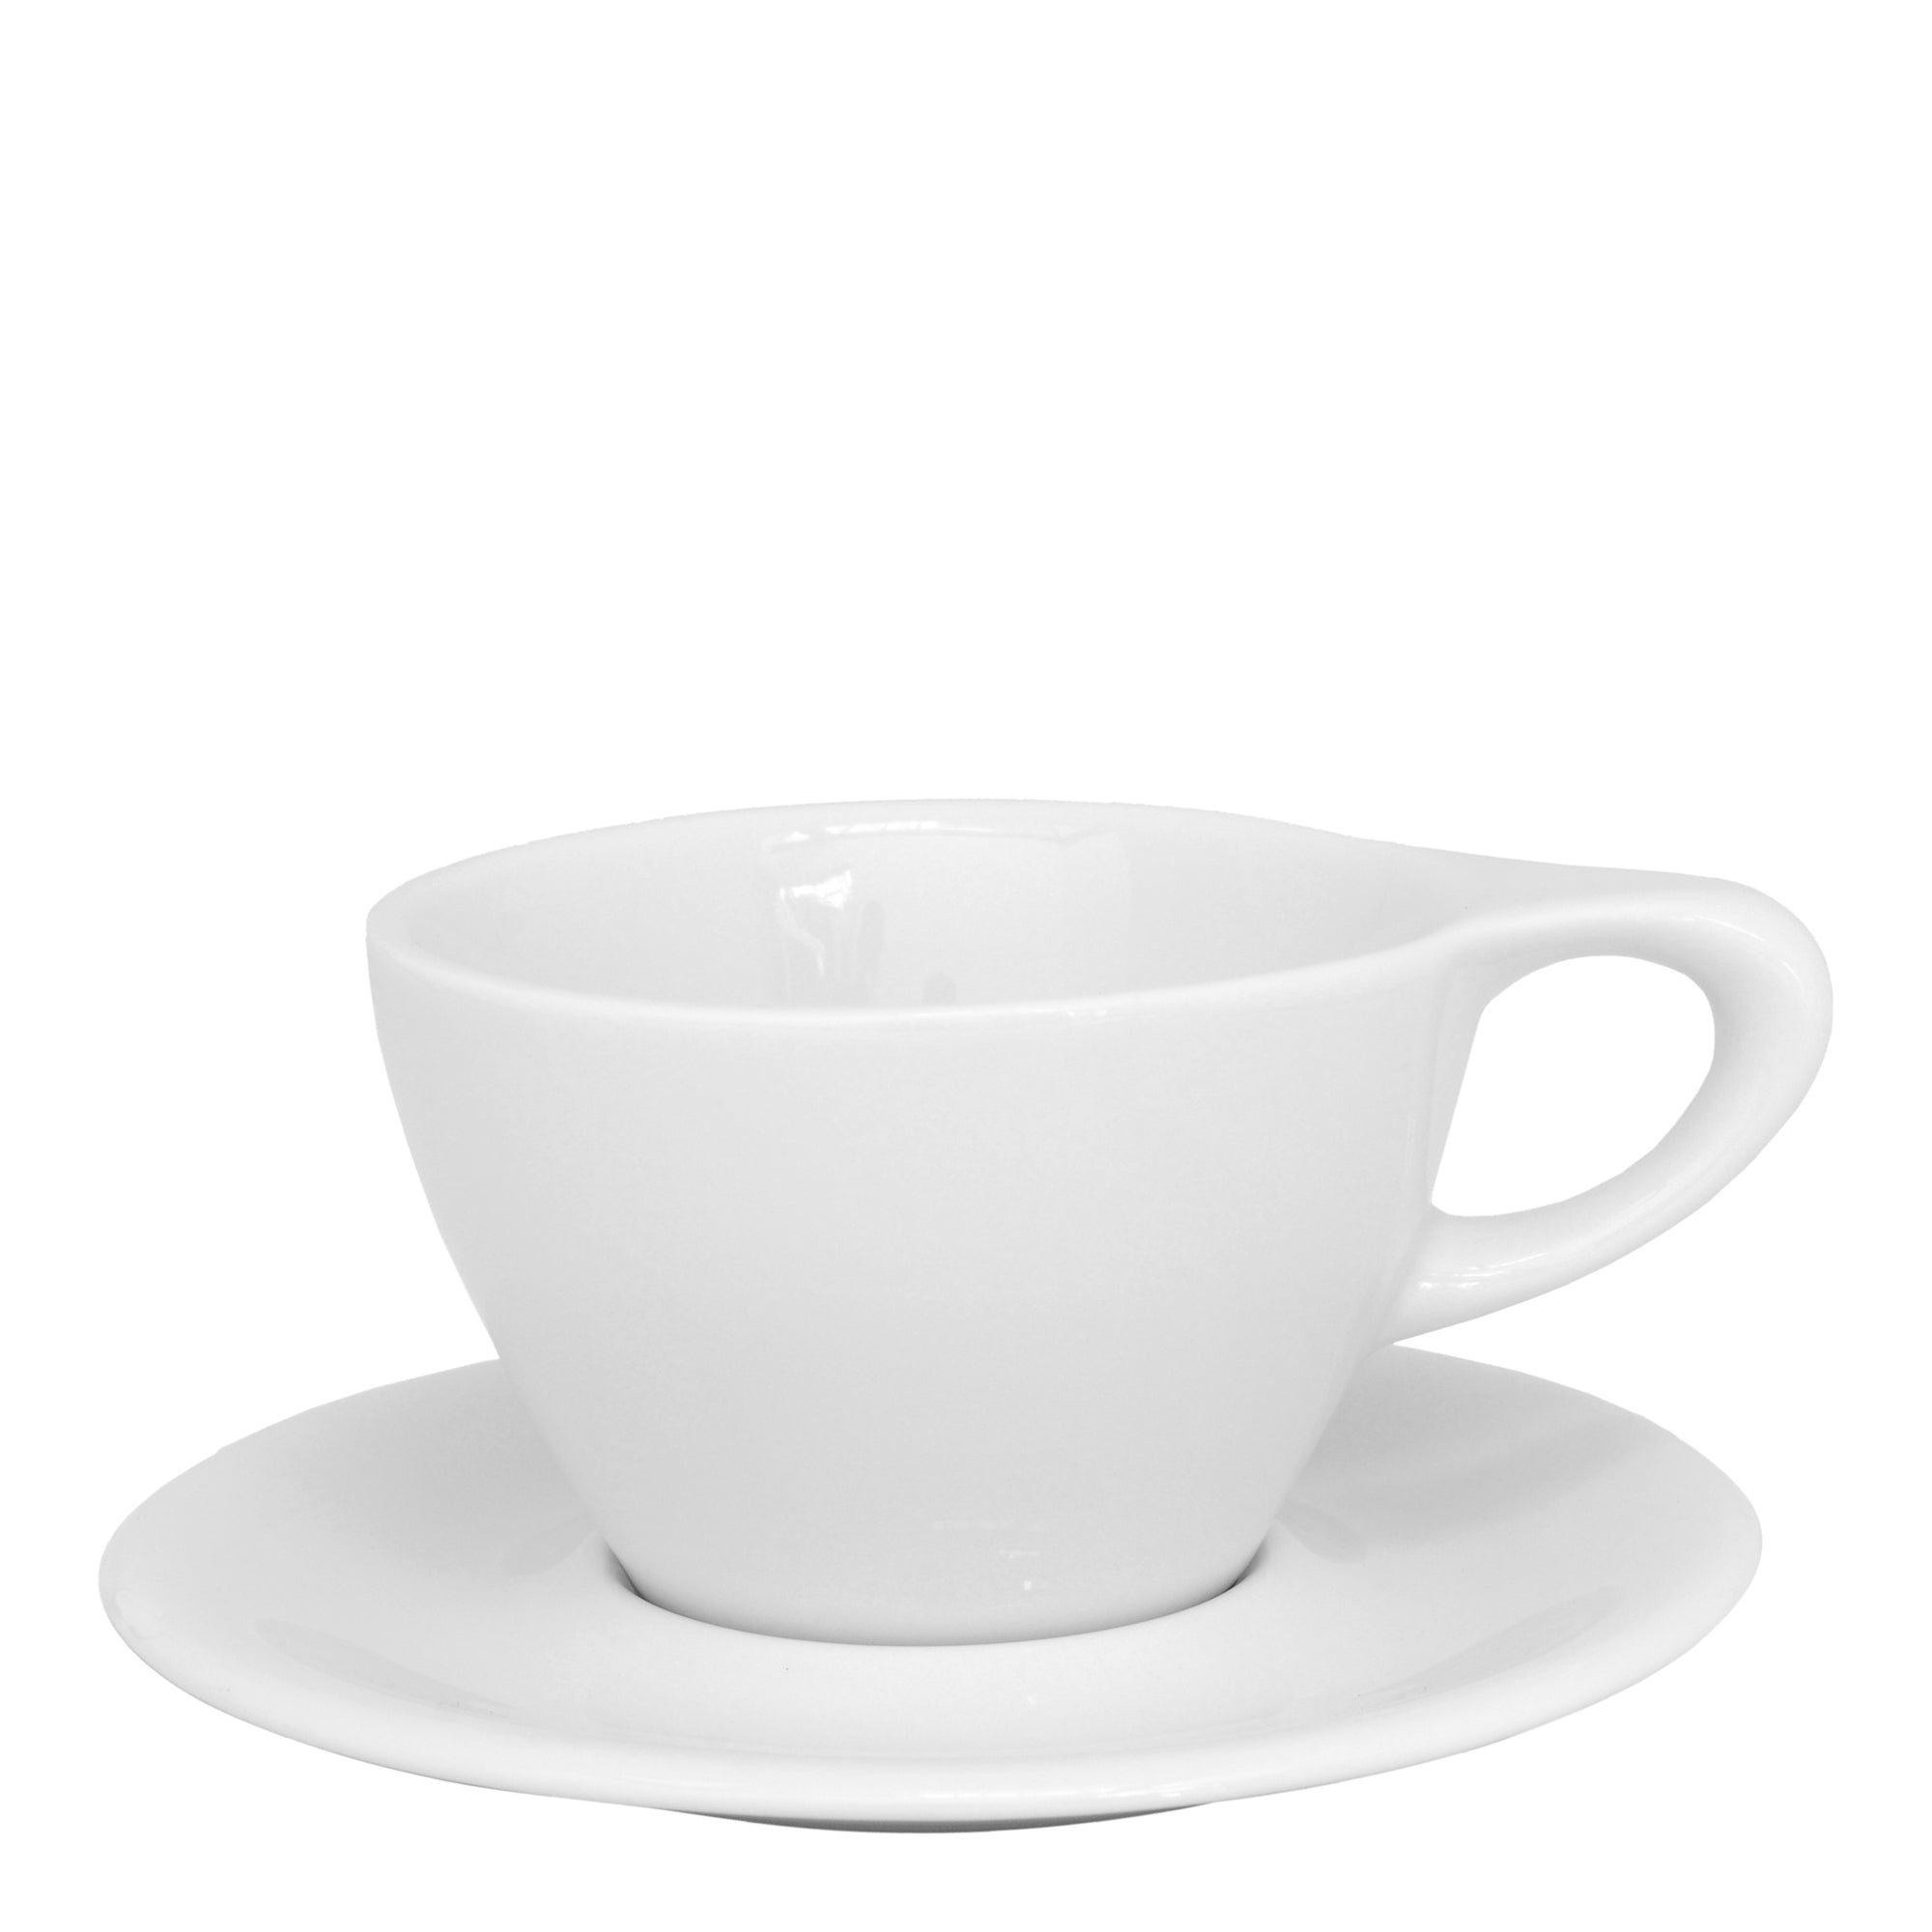 NN Lino Small Latte Cup 8oz/24cl - Espresso Gear